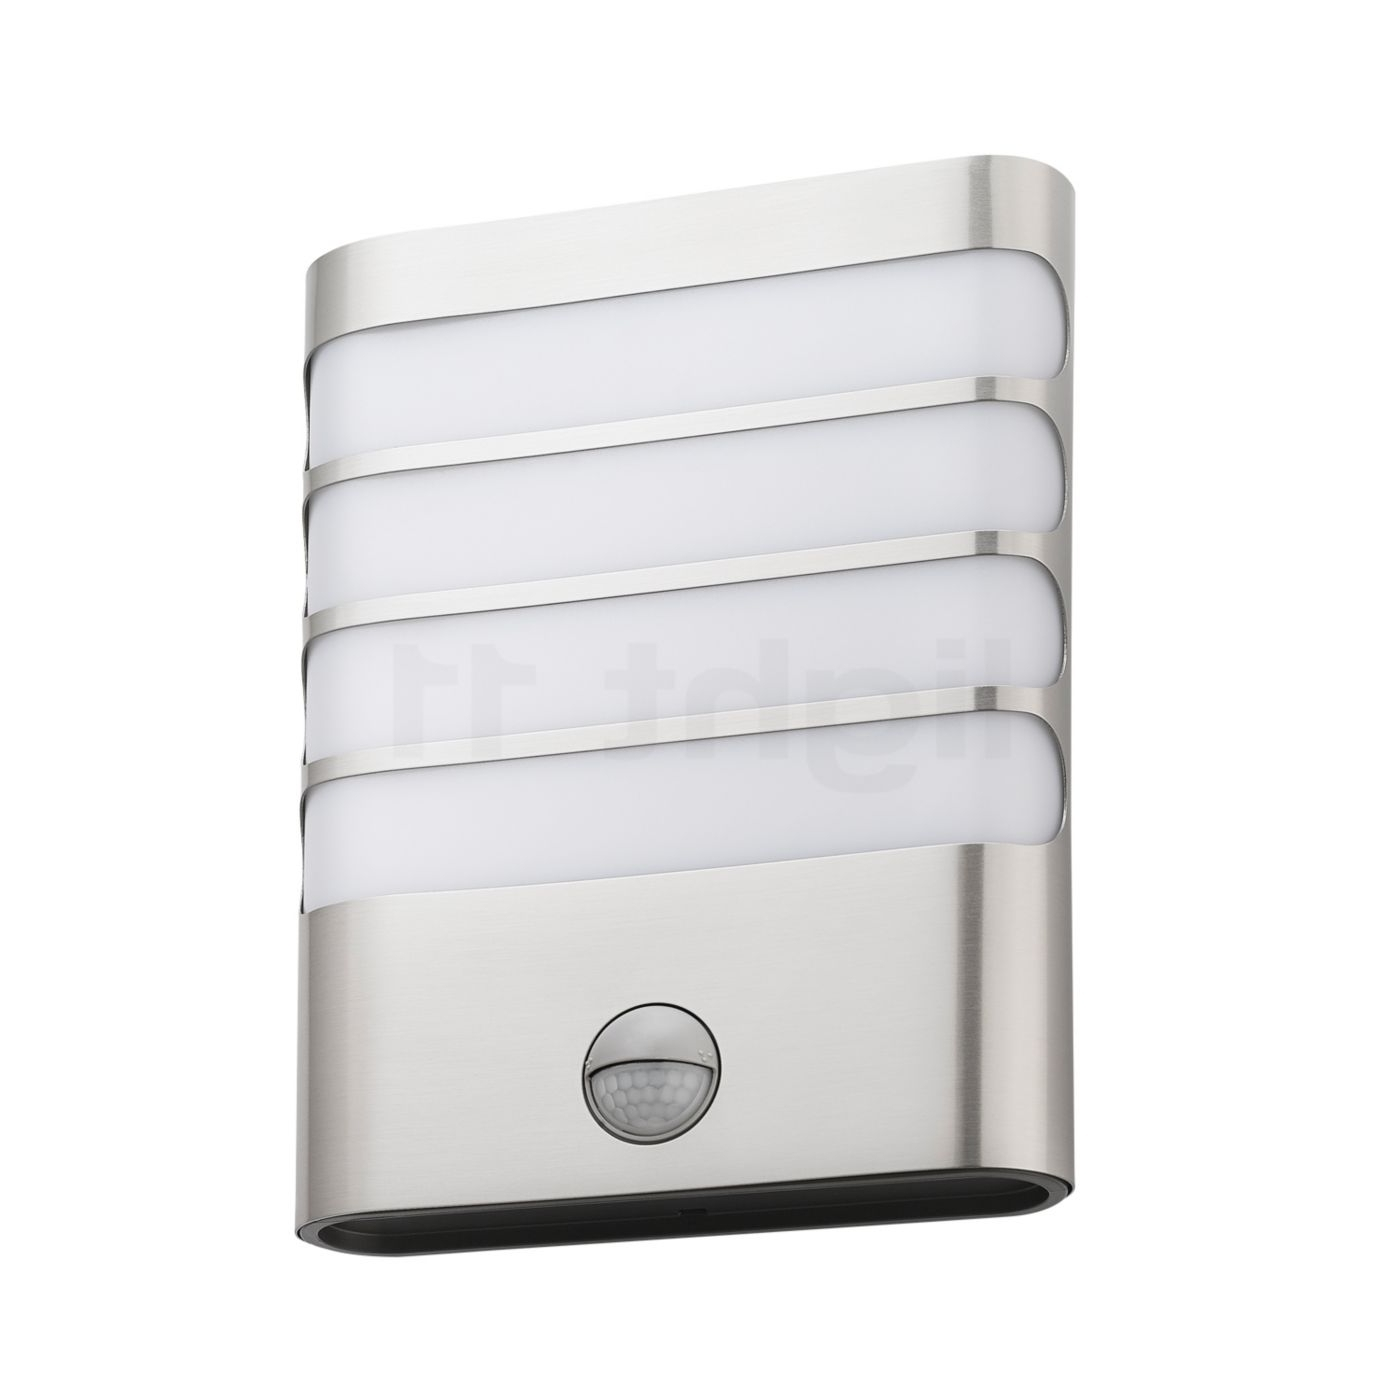 Led Outdoor Raccoon Wall Lights With Motion Detector In Most Up To Date Philips Mygarden Raccoon 17274 Wall Light With Motion Detector Led (View 4 of 20)